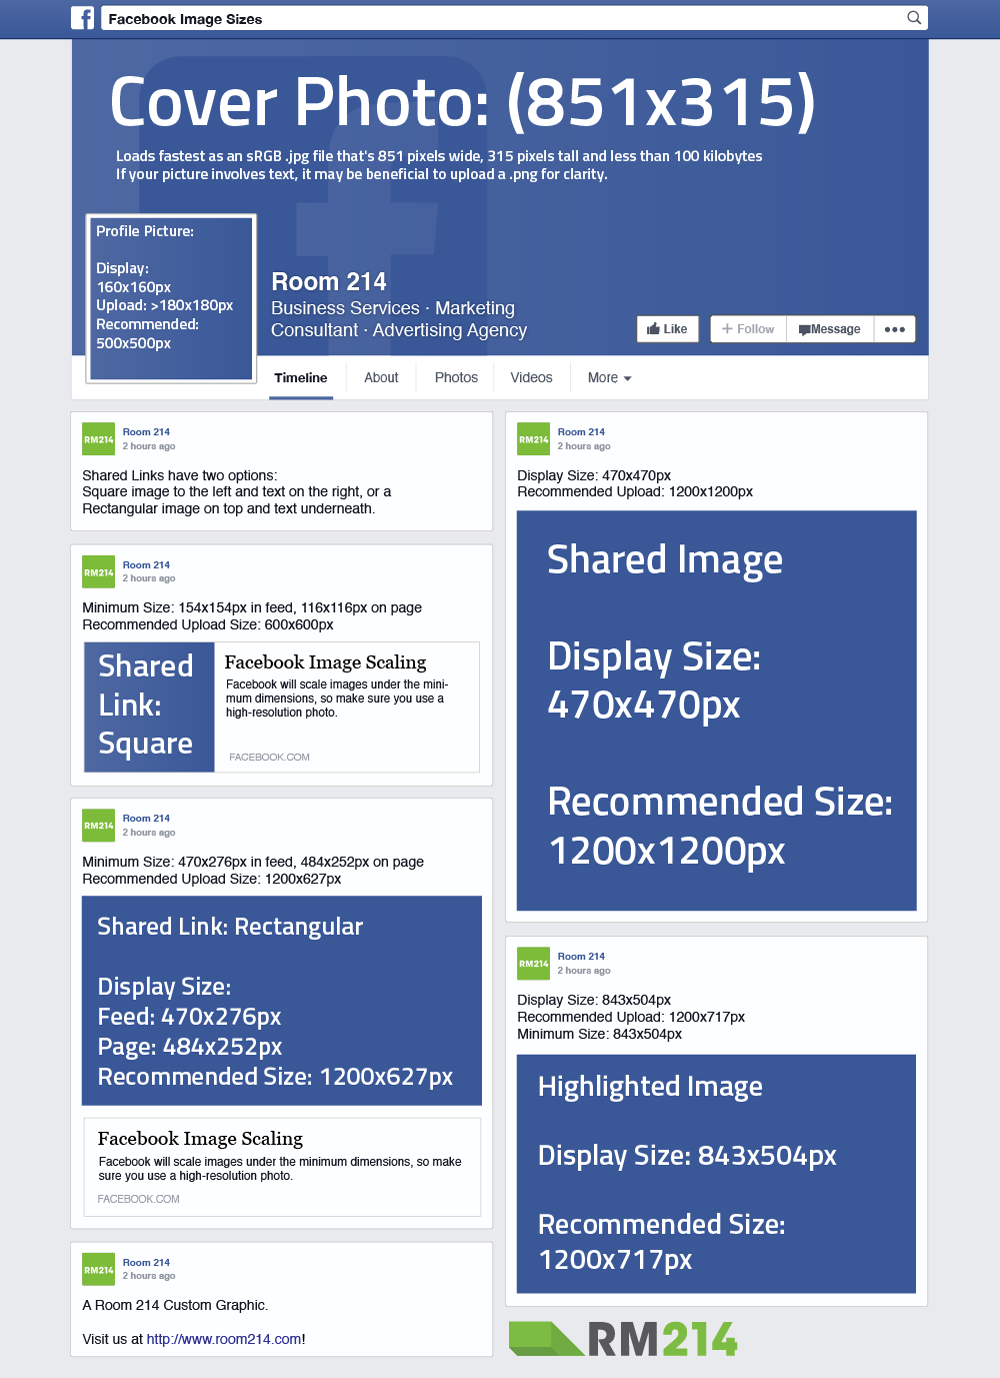 How To Size Your Images So They Show Their Best on Facebook ...